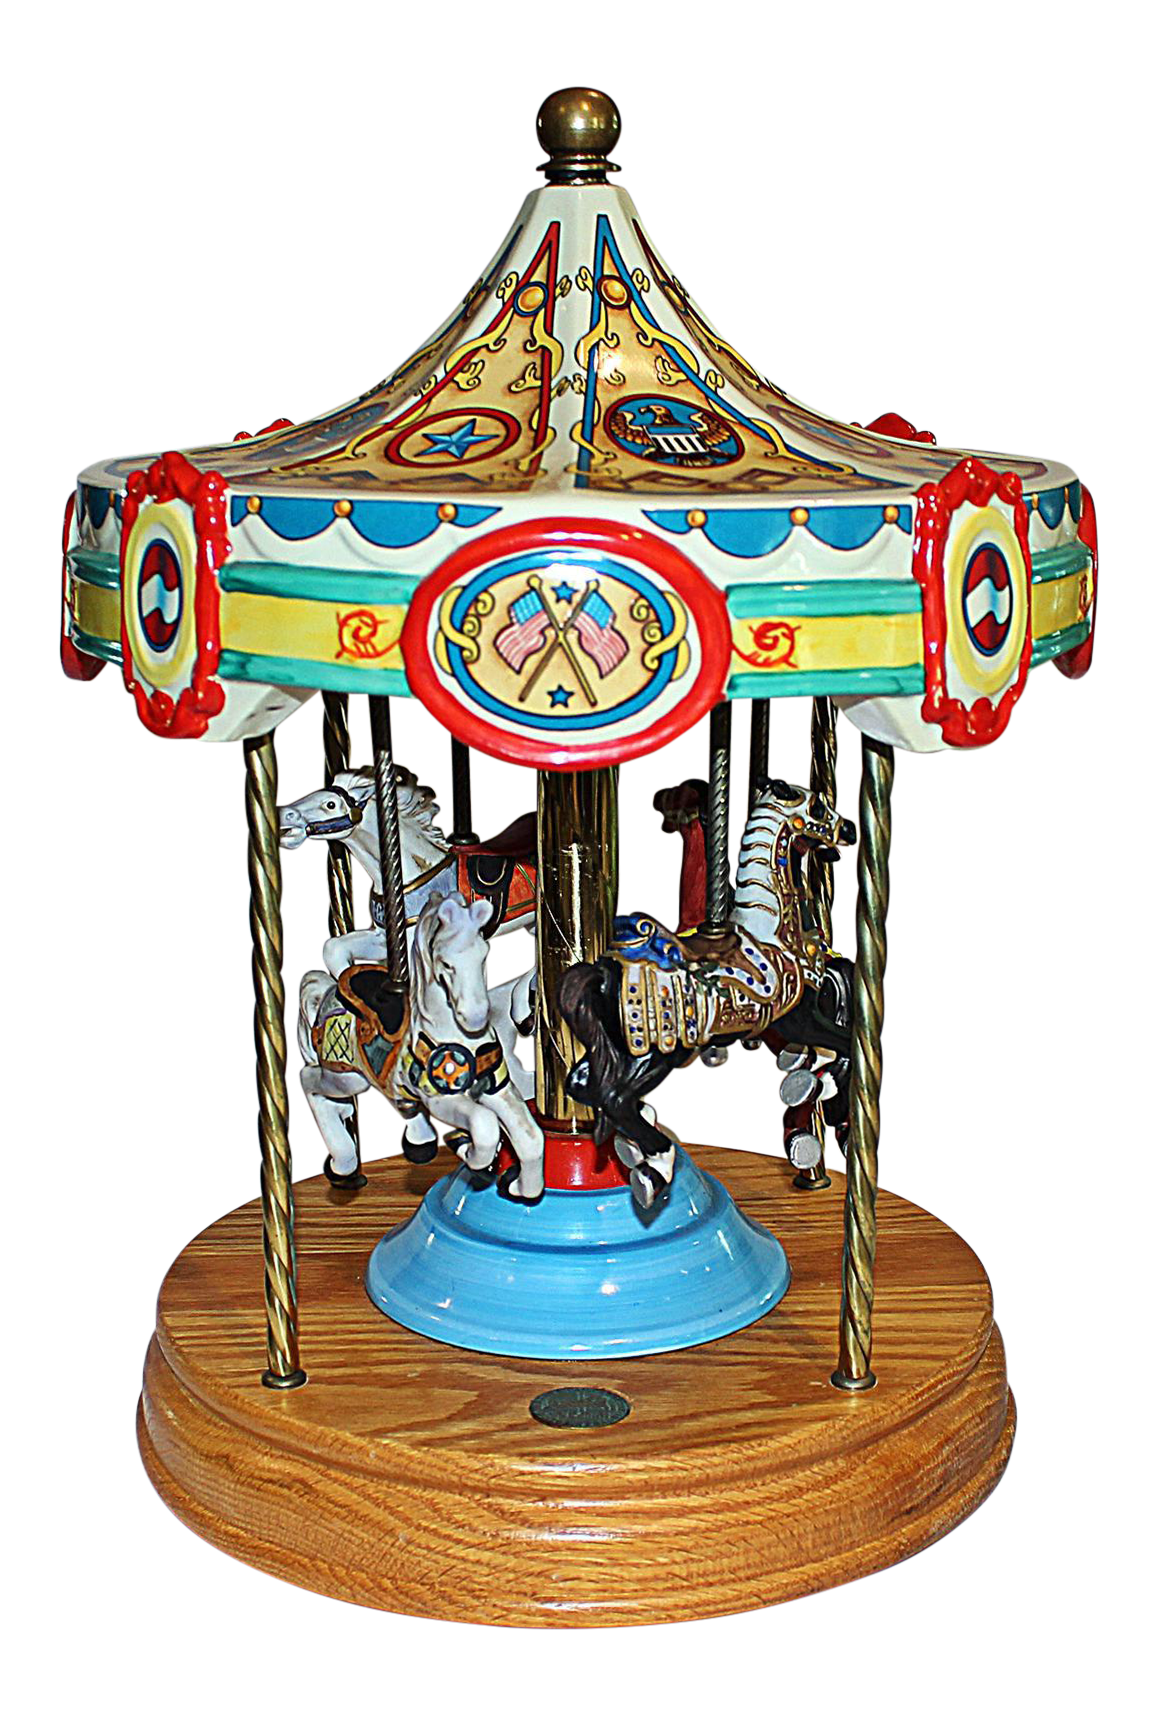 Etonnant Tabletop Carousel By Fraley For Sale